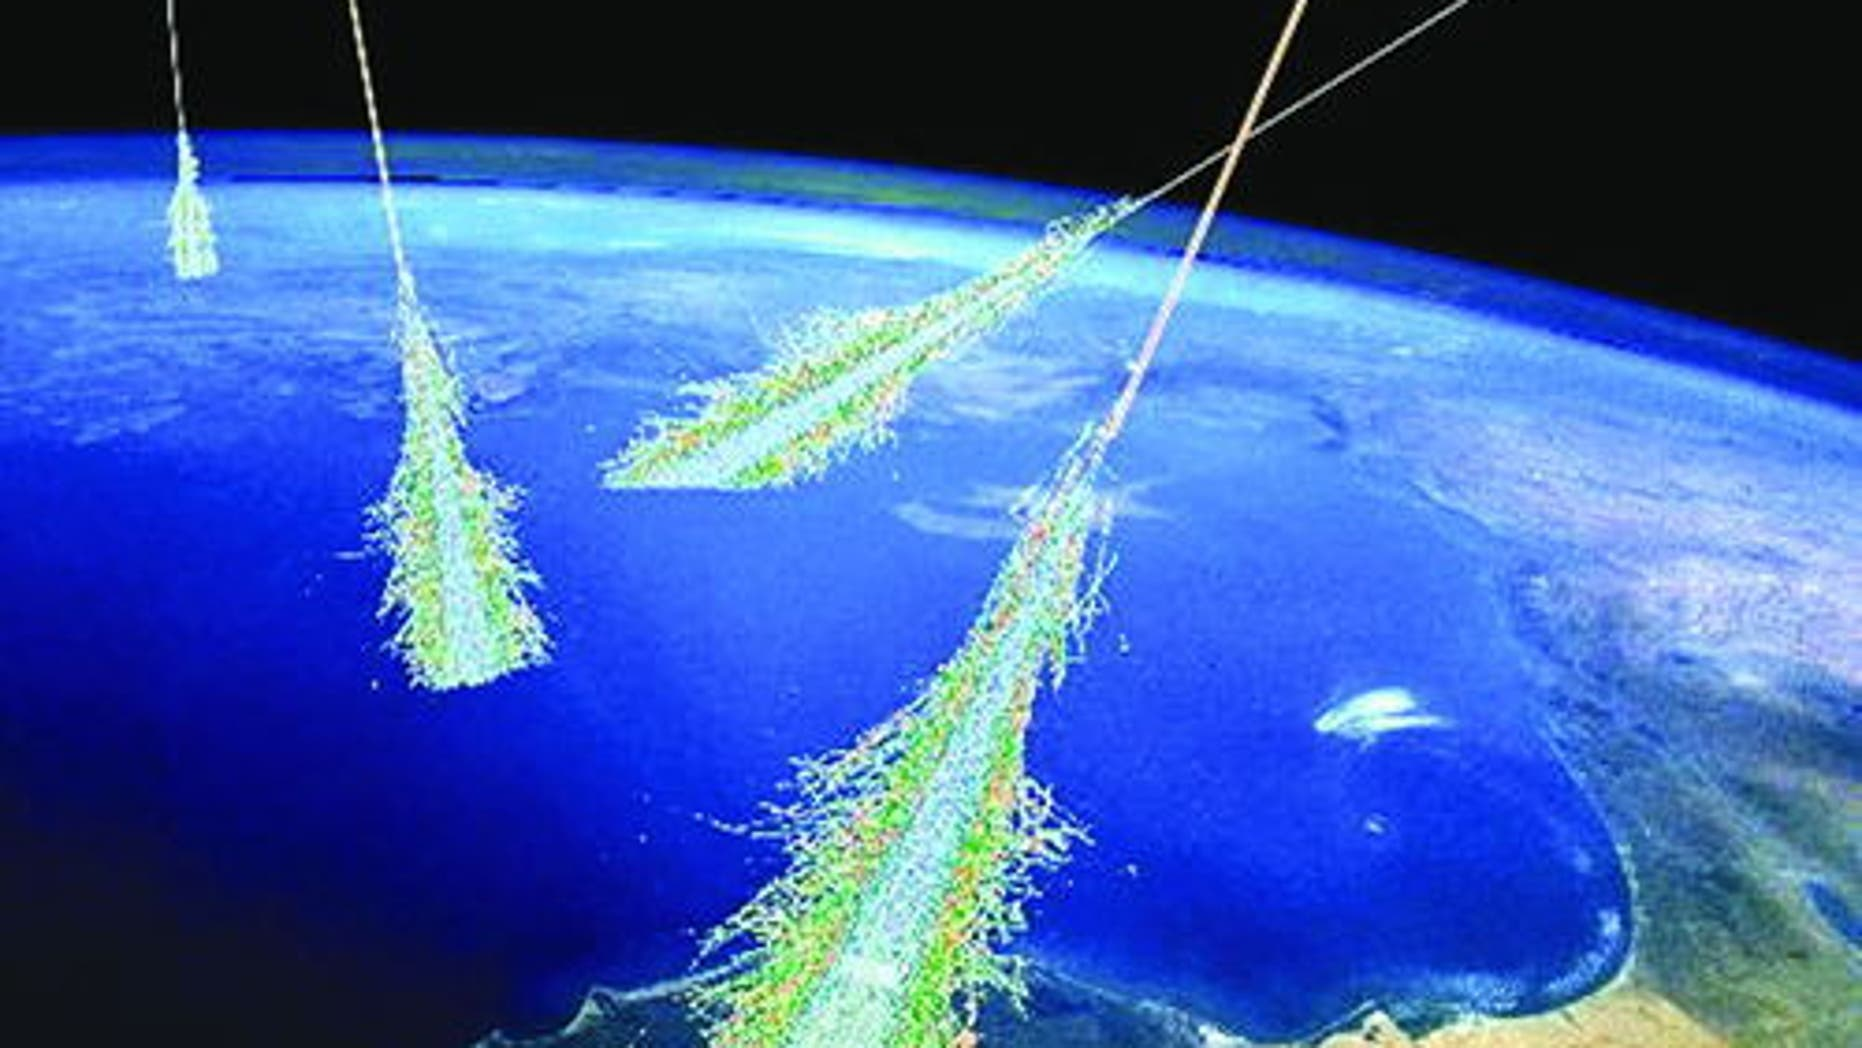 An artist's concept of the shower of particles produced when Earth's atmosphere is struck by ultra-high-energy cosmic rays.